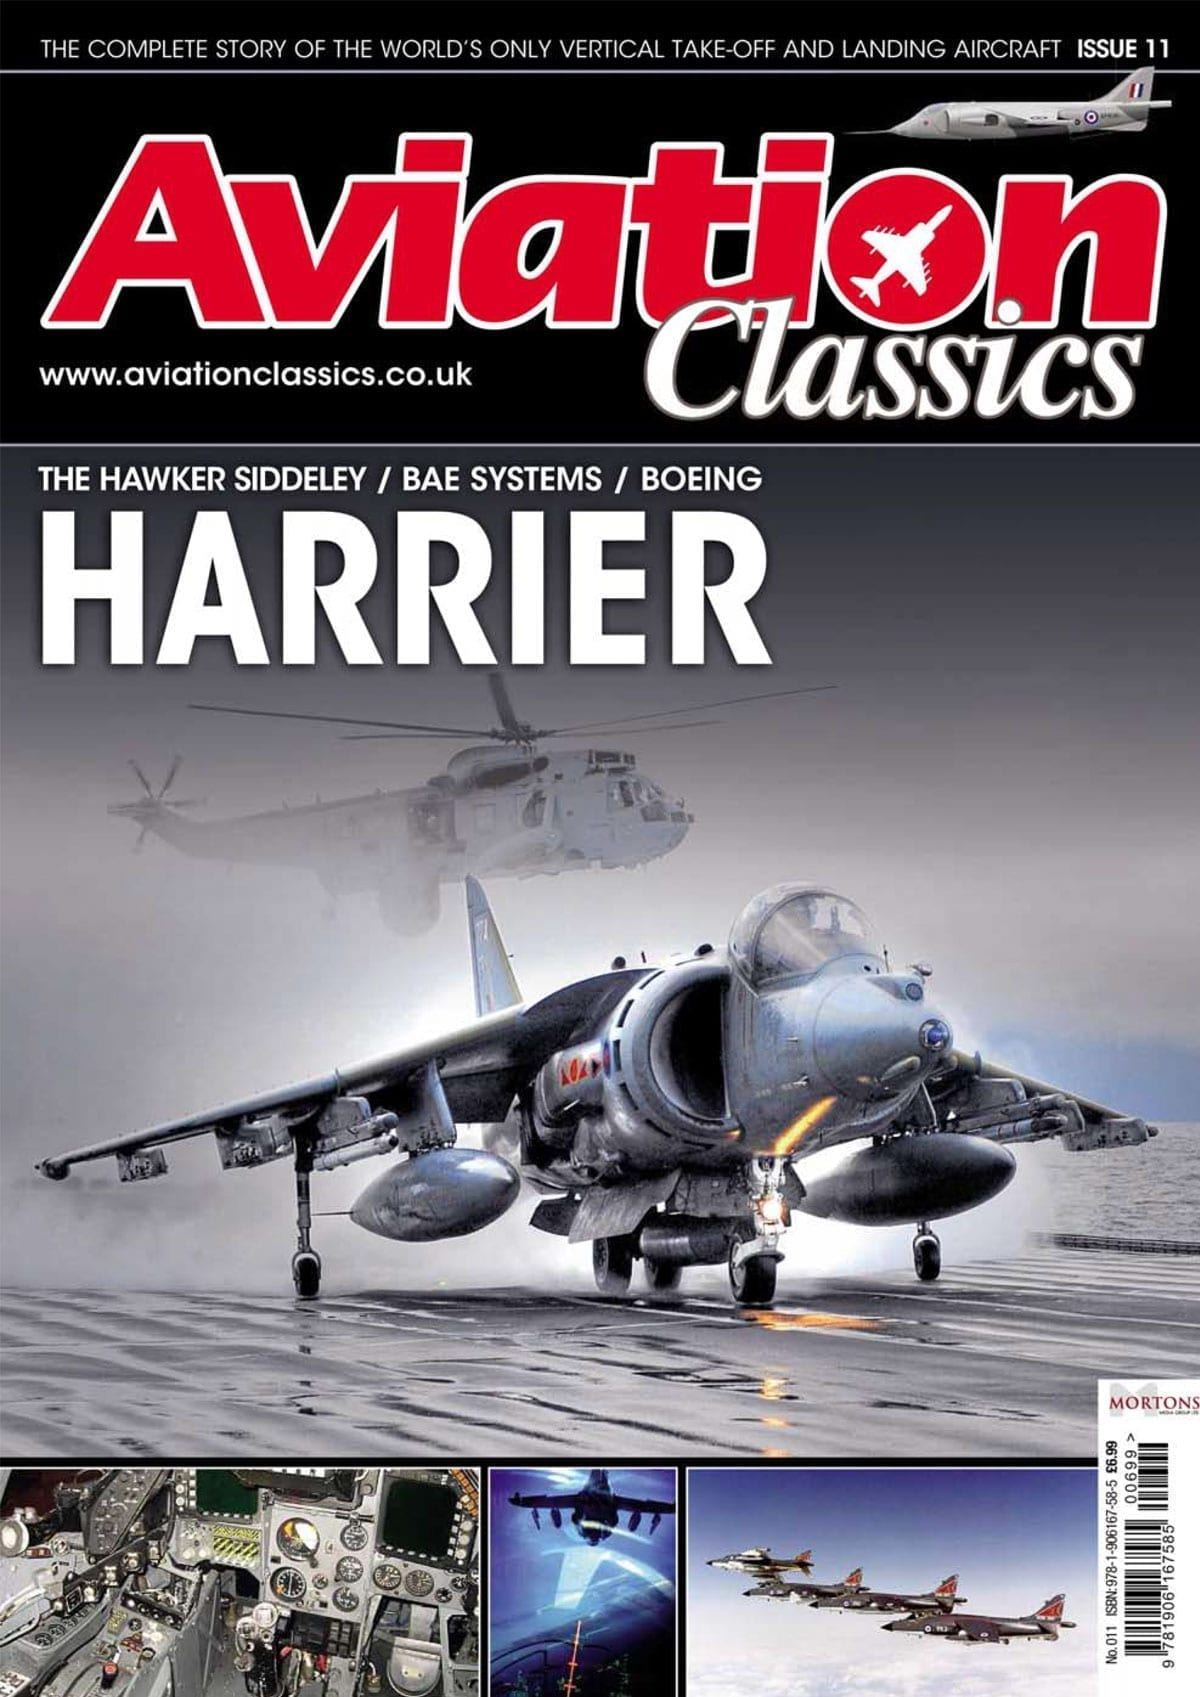 Aviation Classics - Harrier